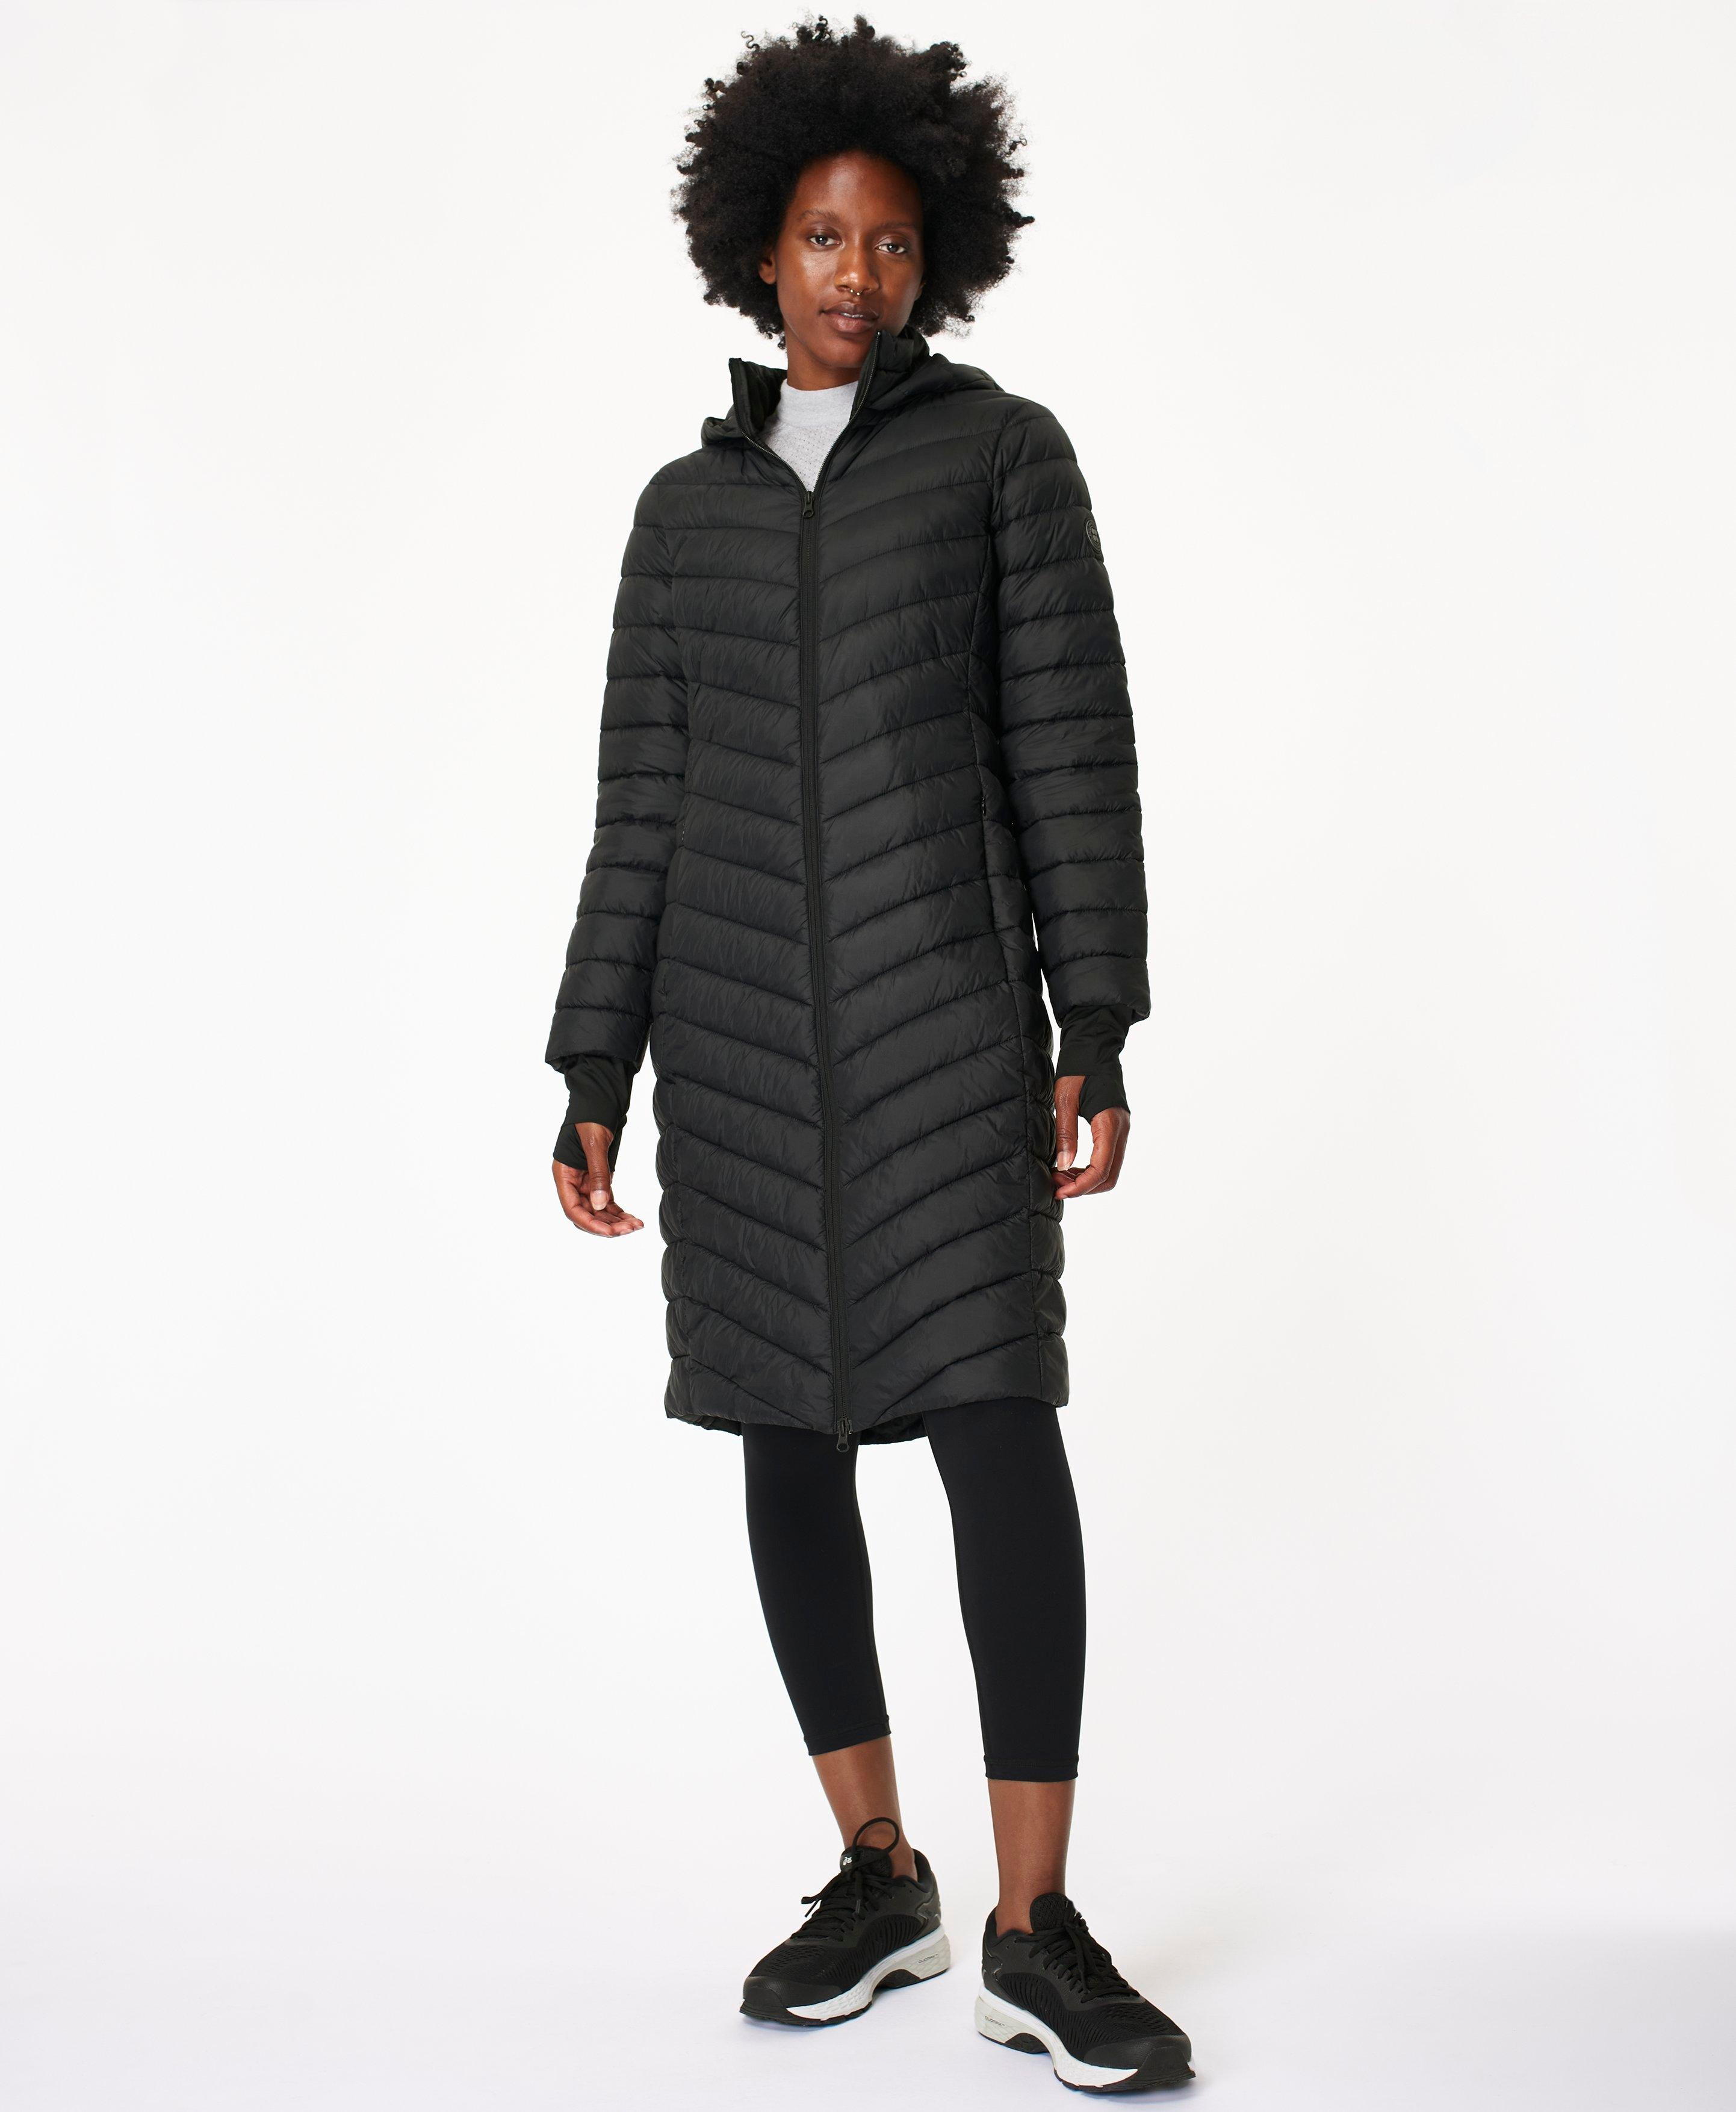 Enjoy warmth without weight with this ultra-lightweight puffa jacket. This quilted style is water resistant, has a slim fit and falls to just below your knees. A cozy hood, zip pockets and a double ended front zip complete this all round favorite.